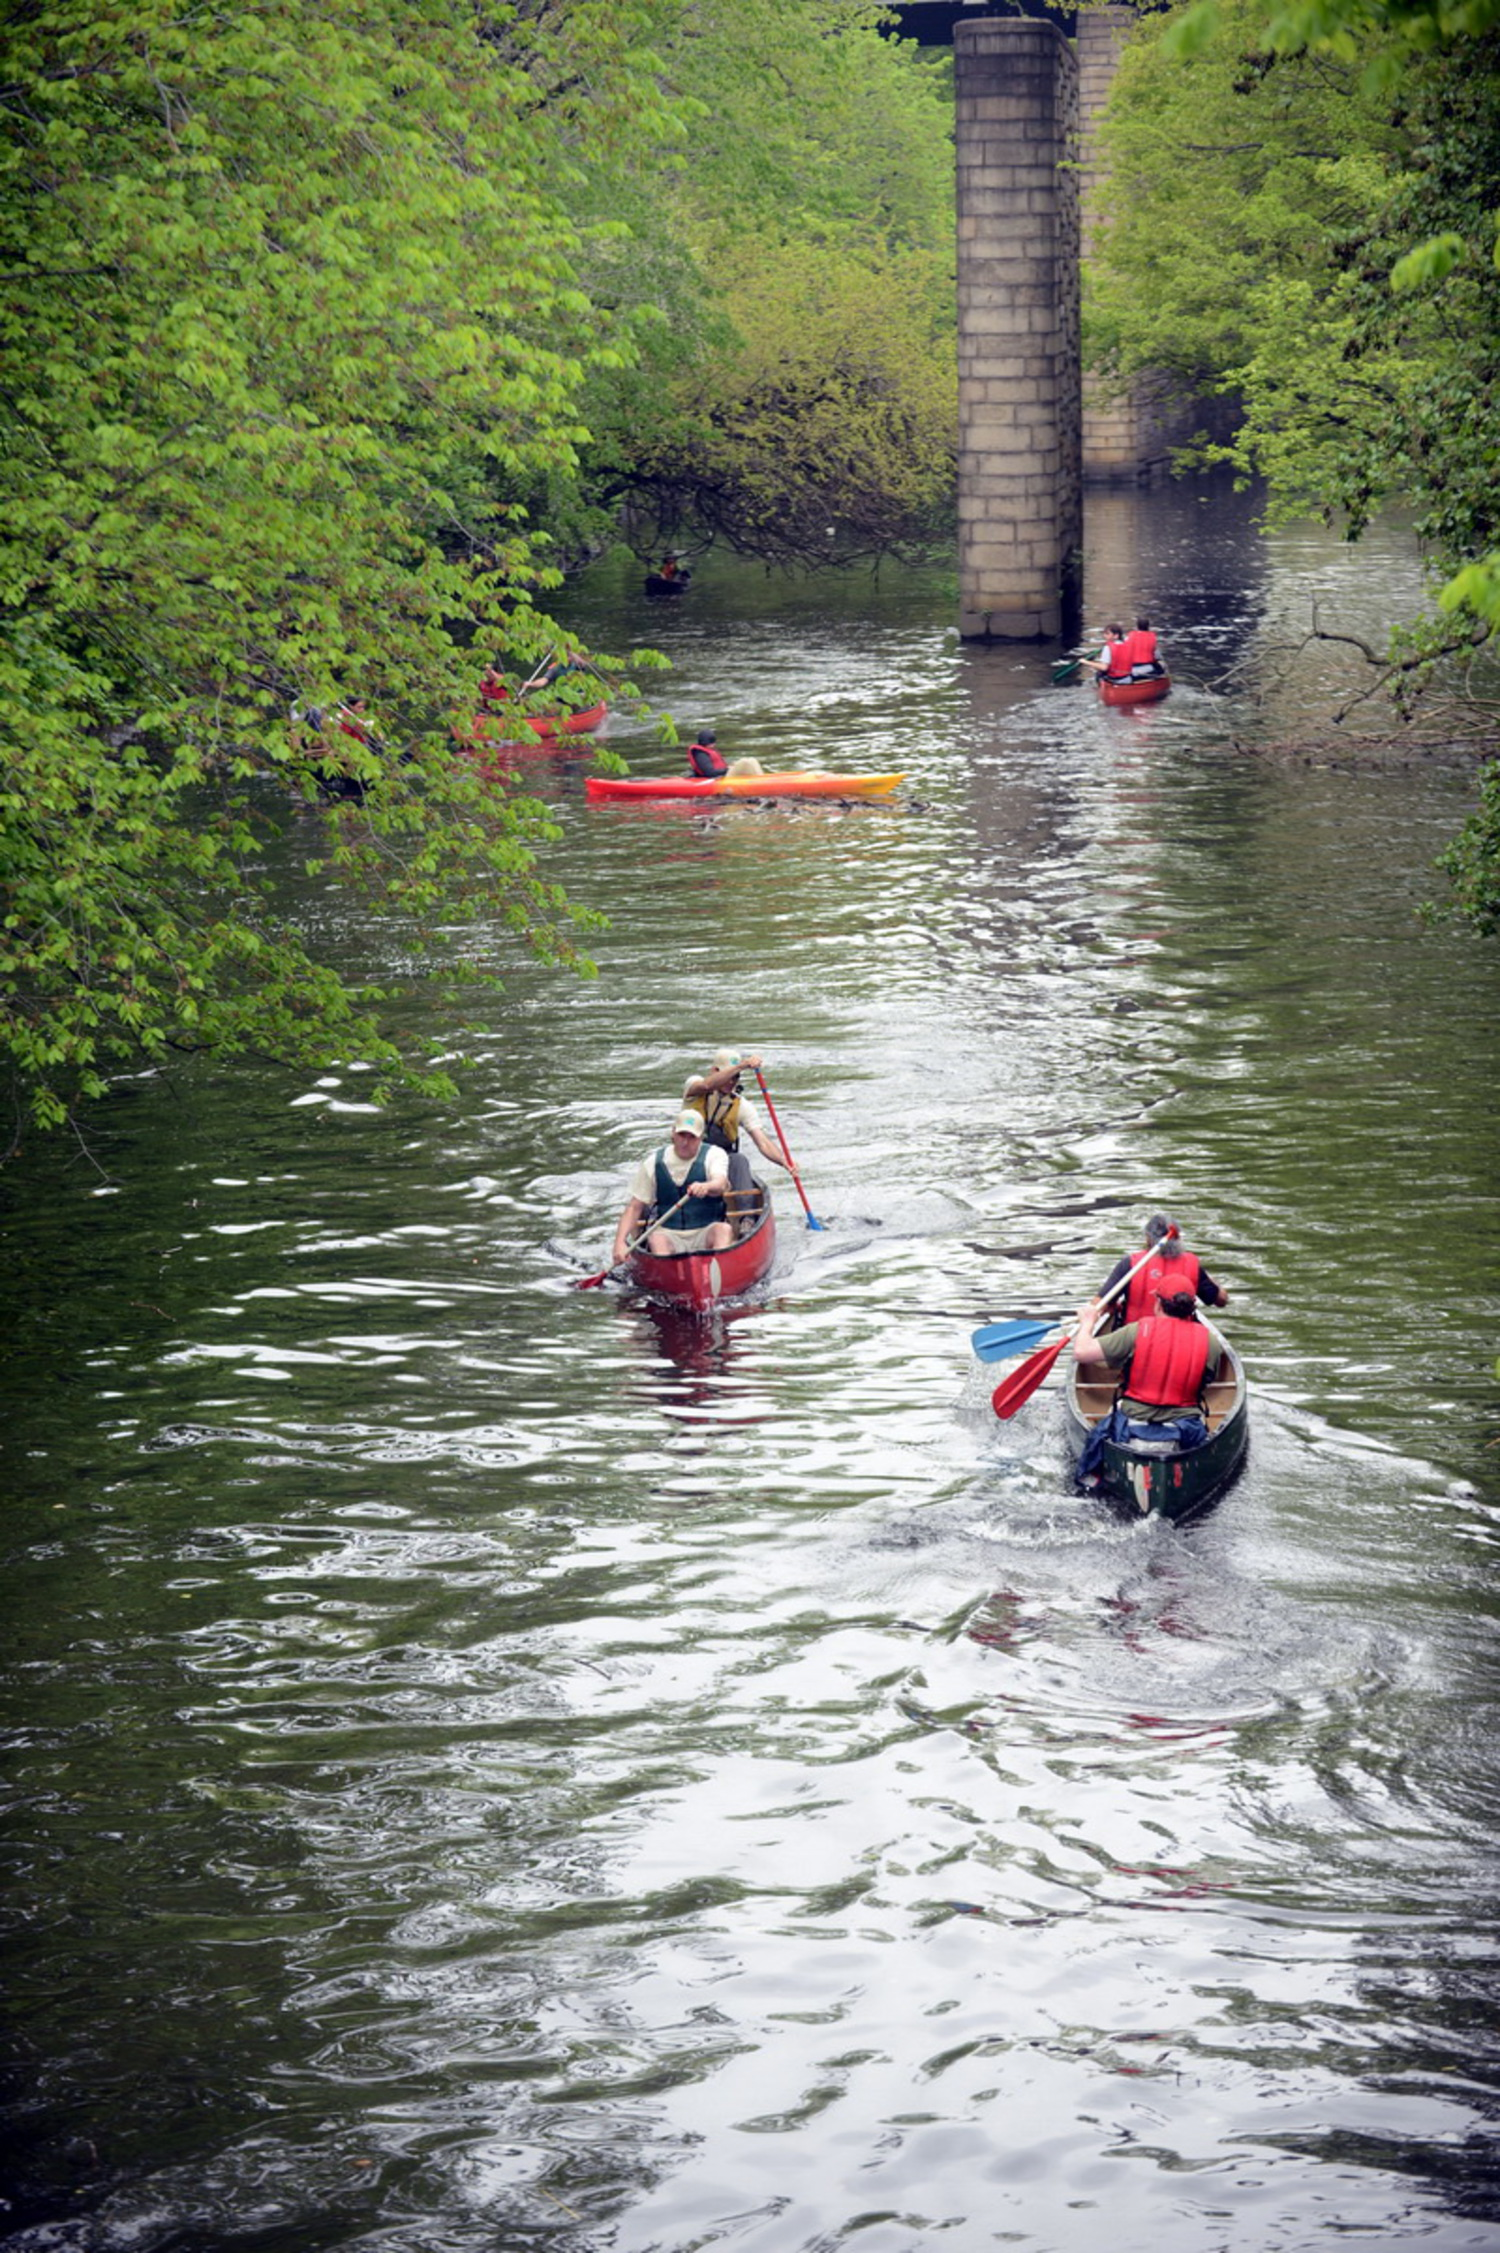 Live Streaming: A Fresh View of the Bronx By Canoe